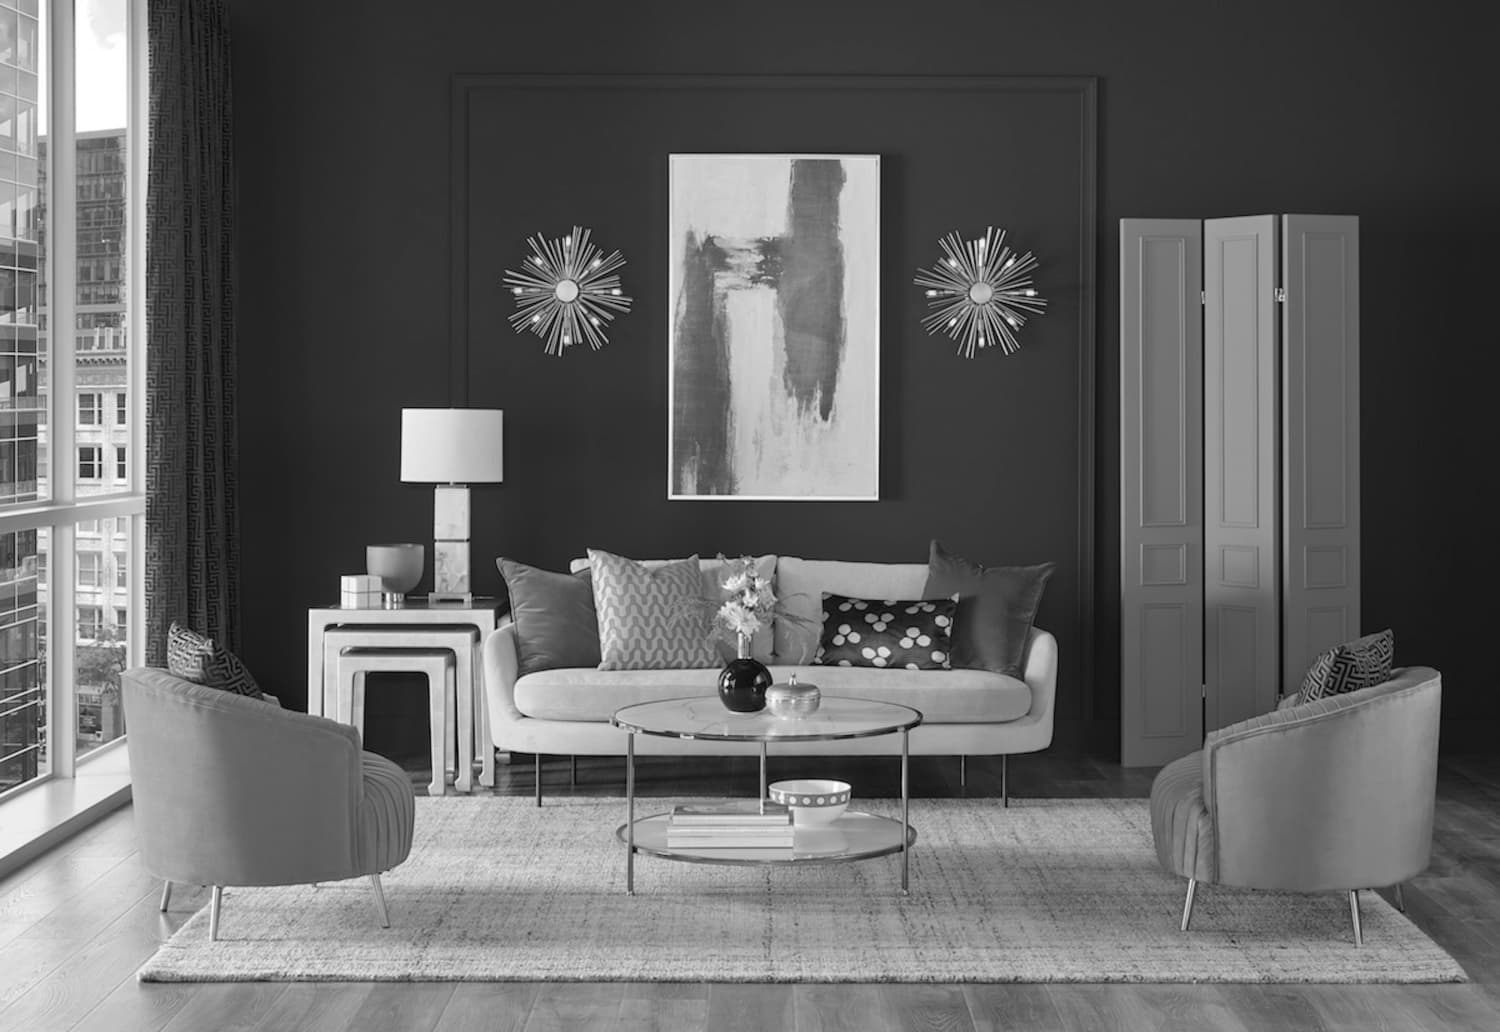 Sherwin-Williams' 2020 Color of the Year Is Inspired by the Roaring '20s